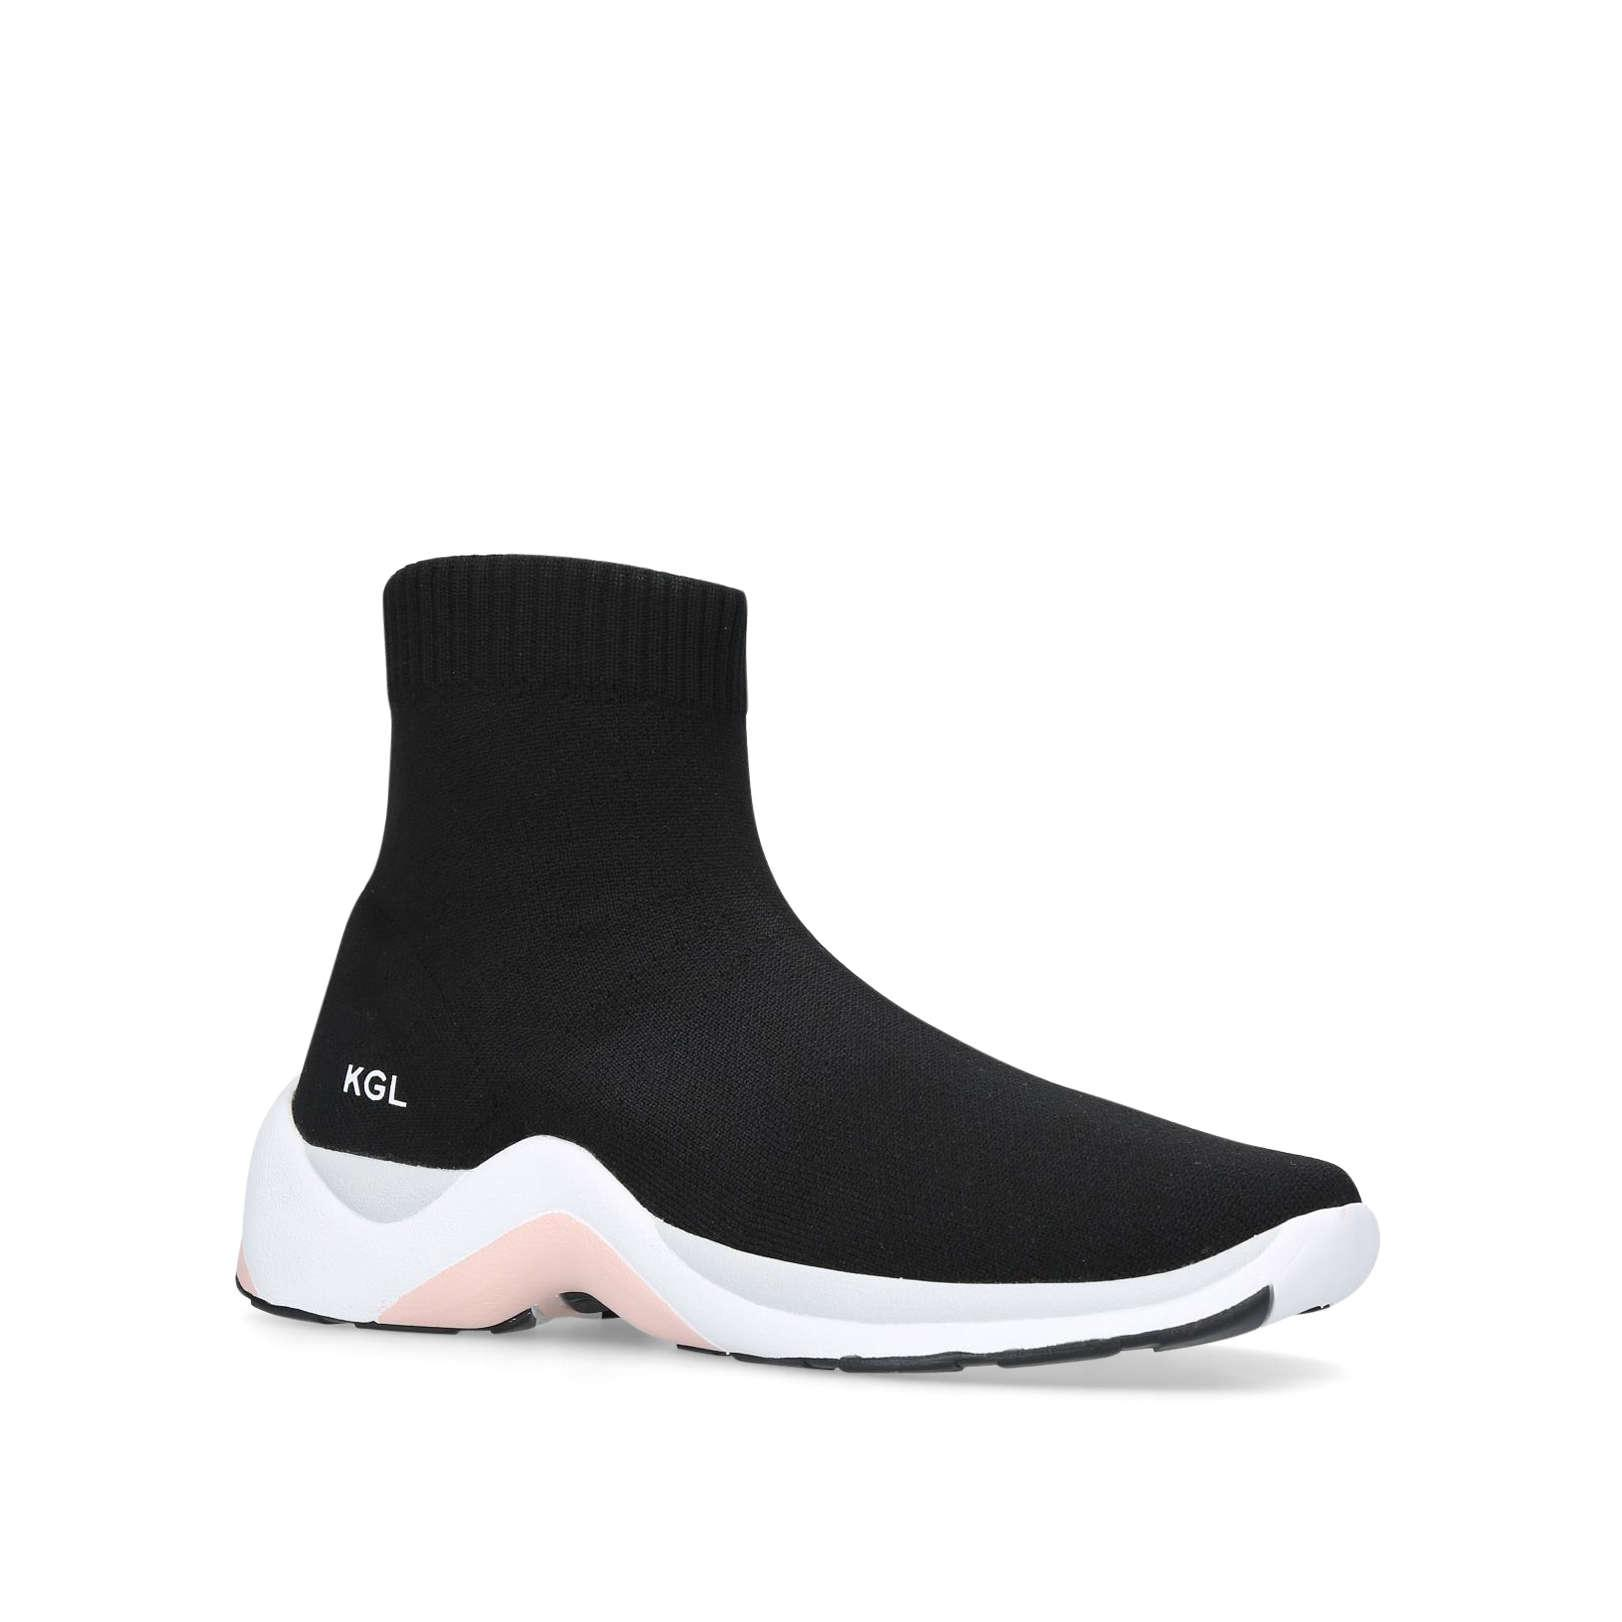 Kurt Geiger Synthetic Linford Sock in